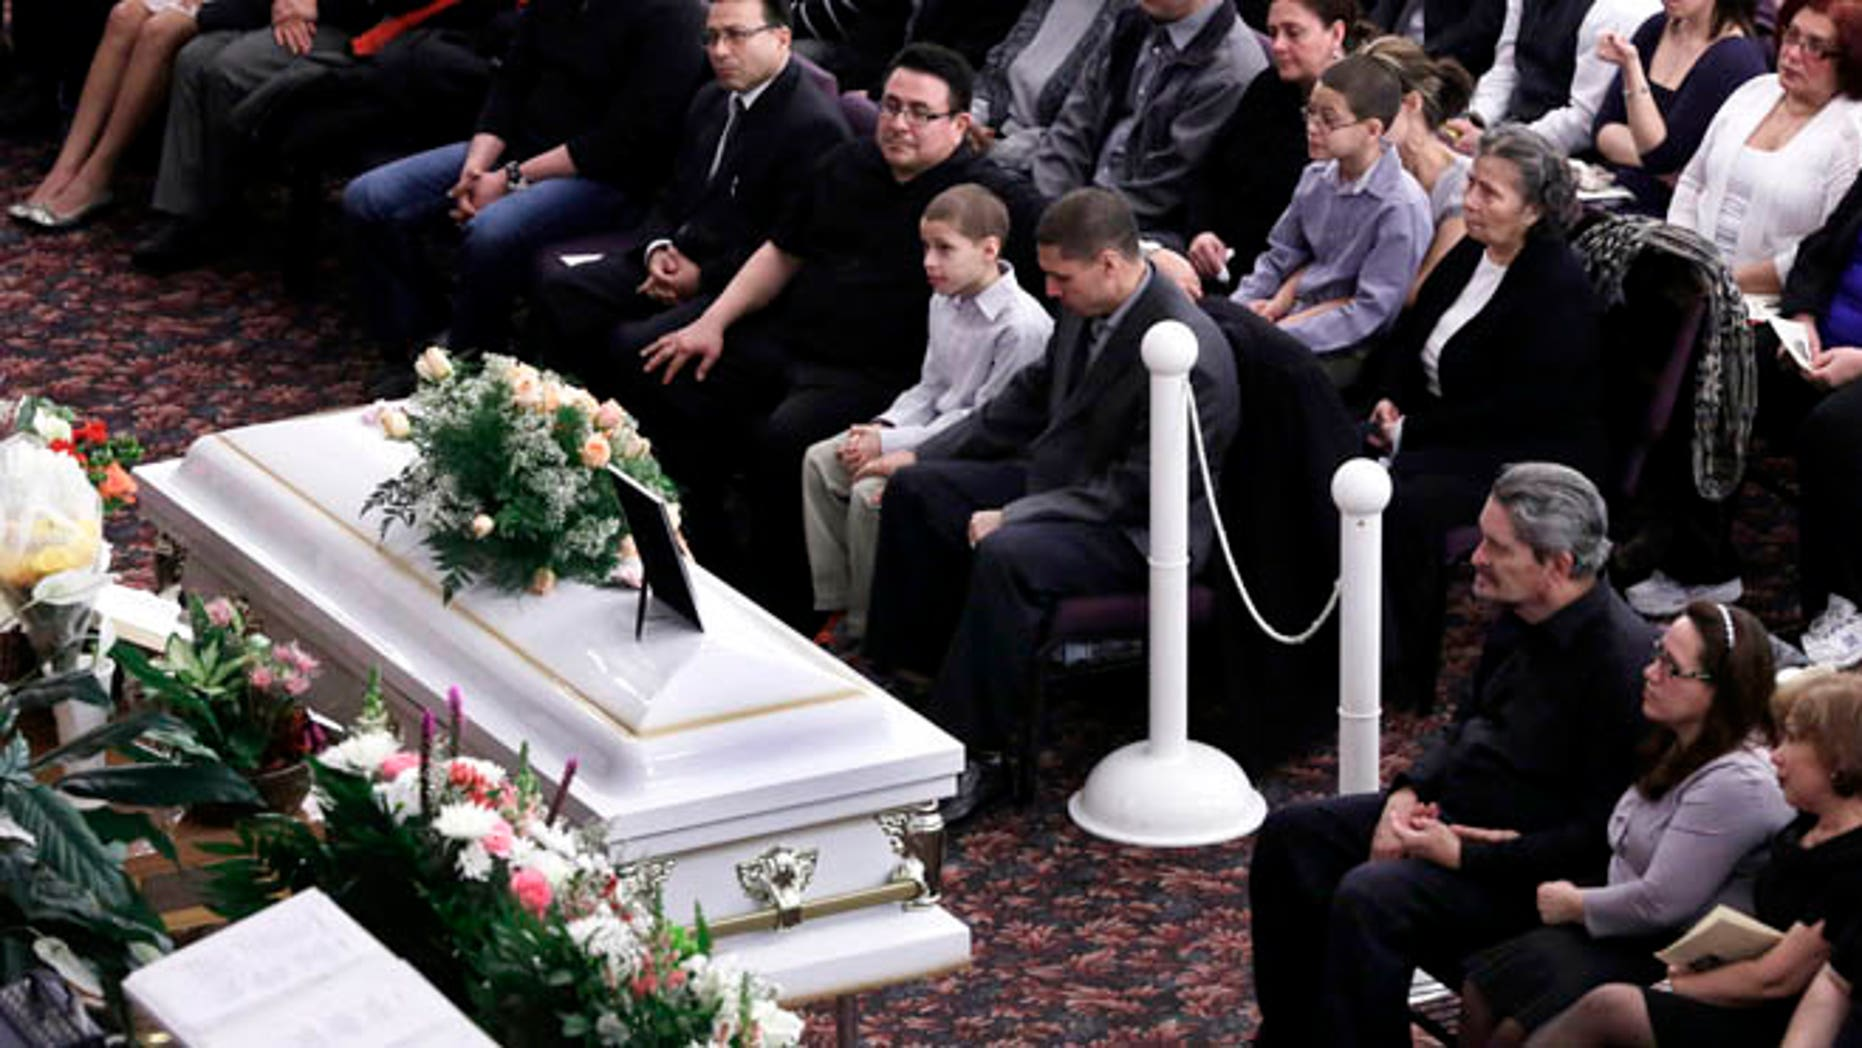 Feb. 15, 2013: Steven Sierra, husband of Sarai Sierra, upper center, with his son Silas Sierra, age 9, and Dennis Jimenez, second from right, father of Sarai Sierra, with his wife Betzaida Jimene, attend her funeral, at the Christian Pentecostal Church, in the Staten Island borough of New York.  The 33-year-old mother of two was killed while vacationing alone in Turkey. Her body was found in Istanbul, 12 days after she disappeared.